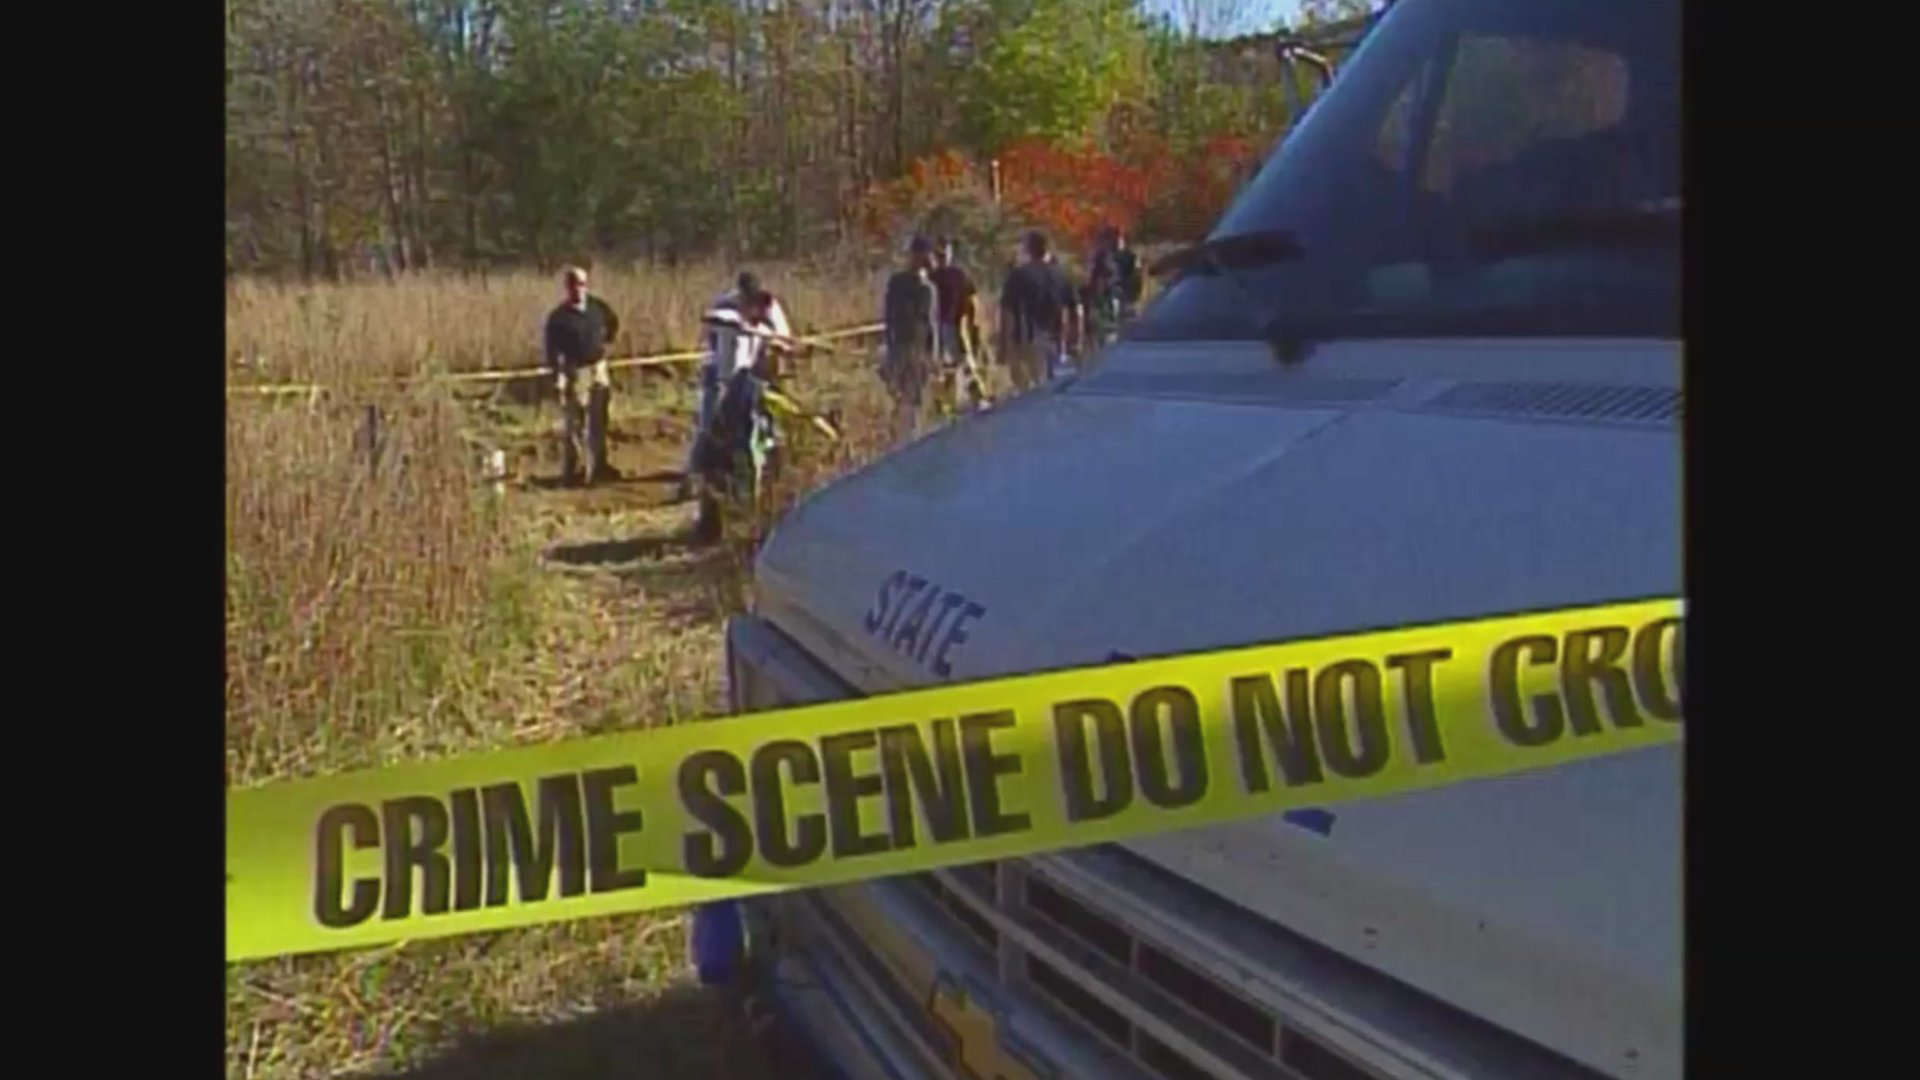 Buried in the Backyard: Police Find Remains In Etna, Maine (Season 2, Episode 4)